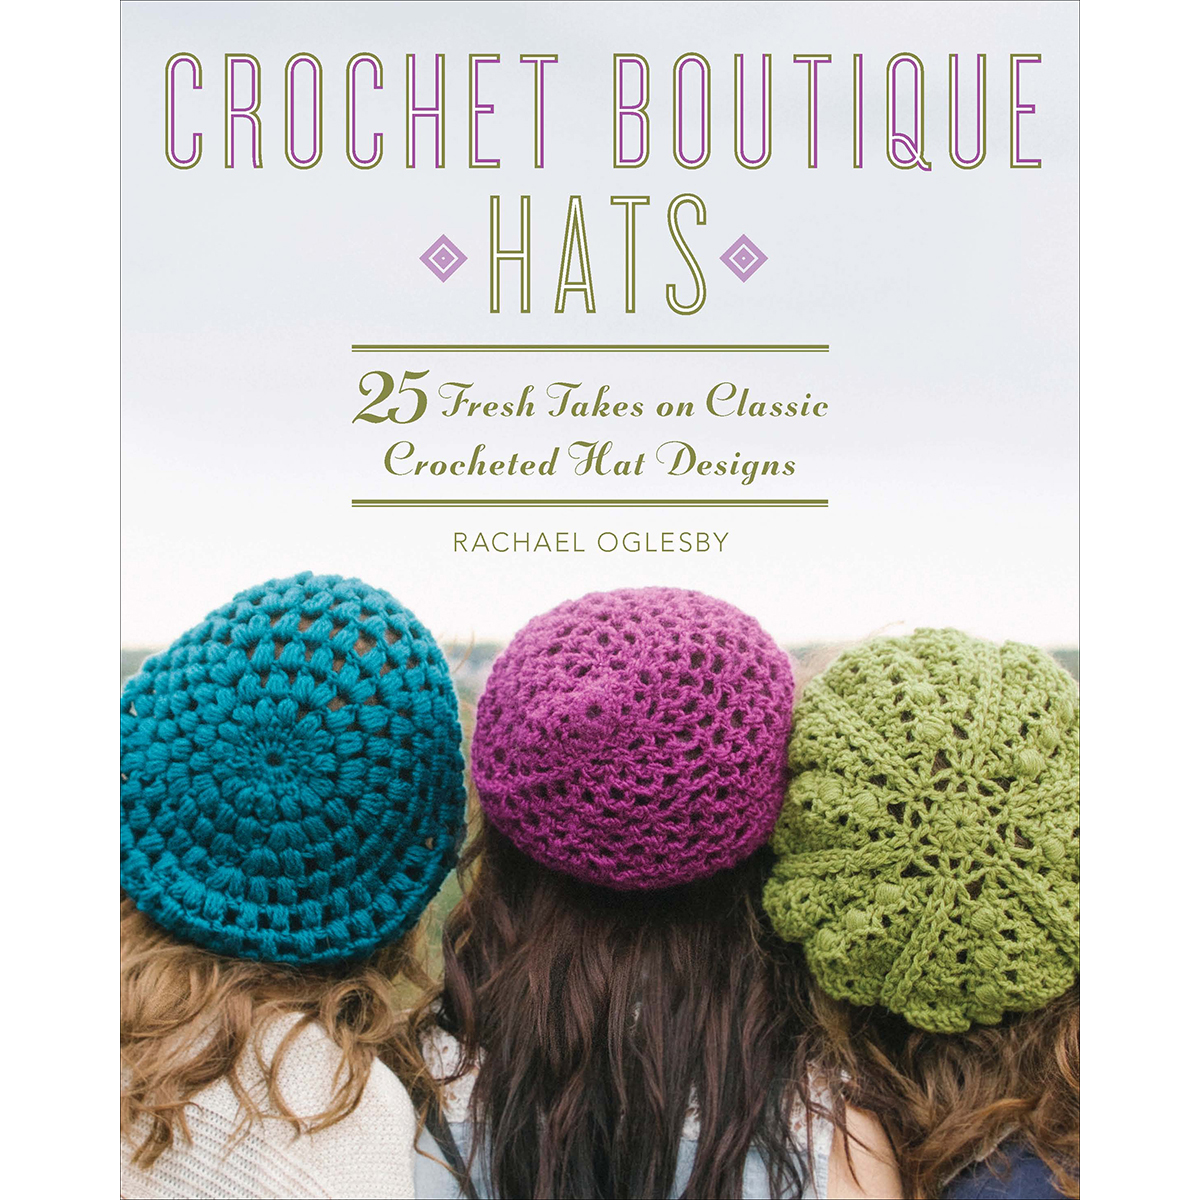 Crochet Books : Books & Crochet Books ? Crochet Books & Crochet Patterns ? Crochet ...